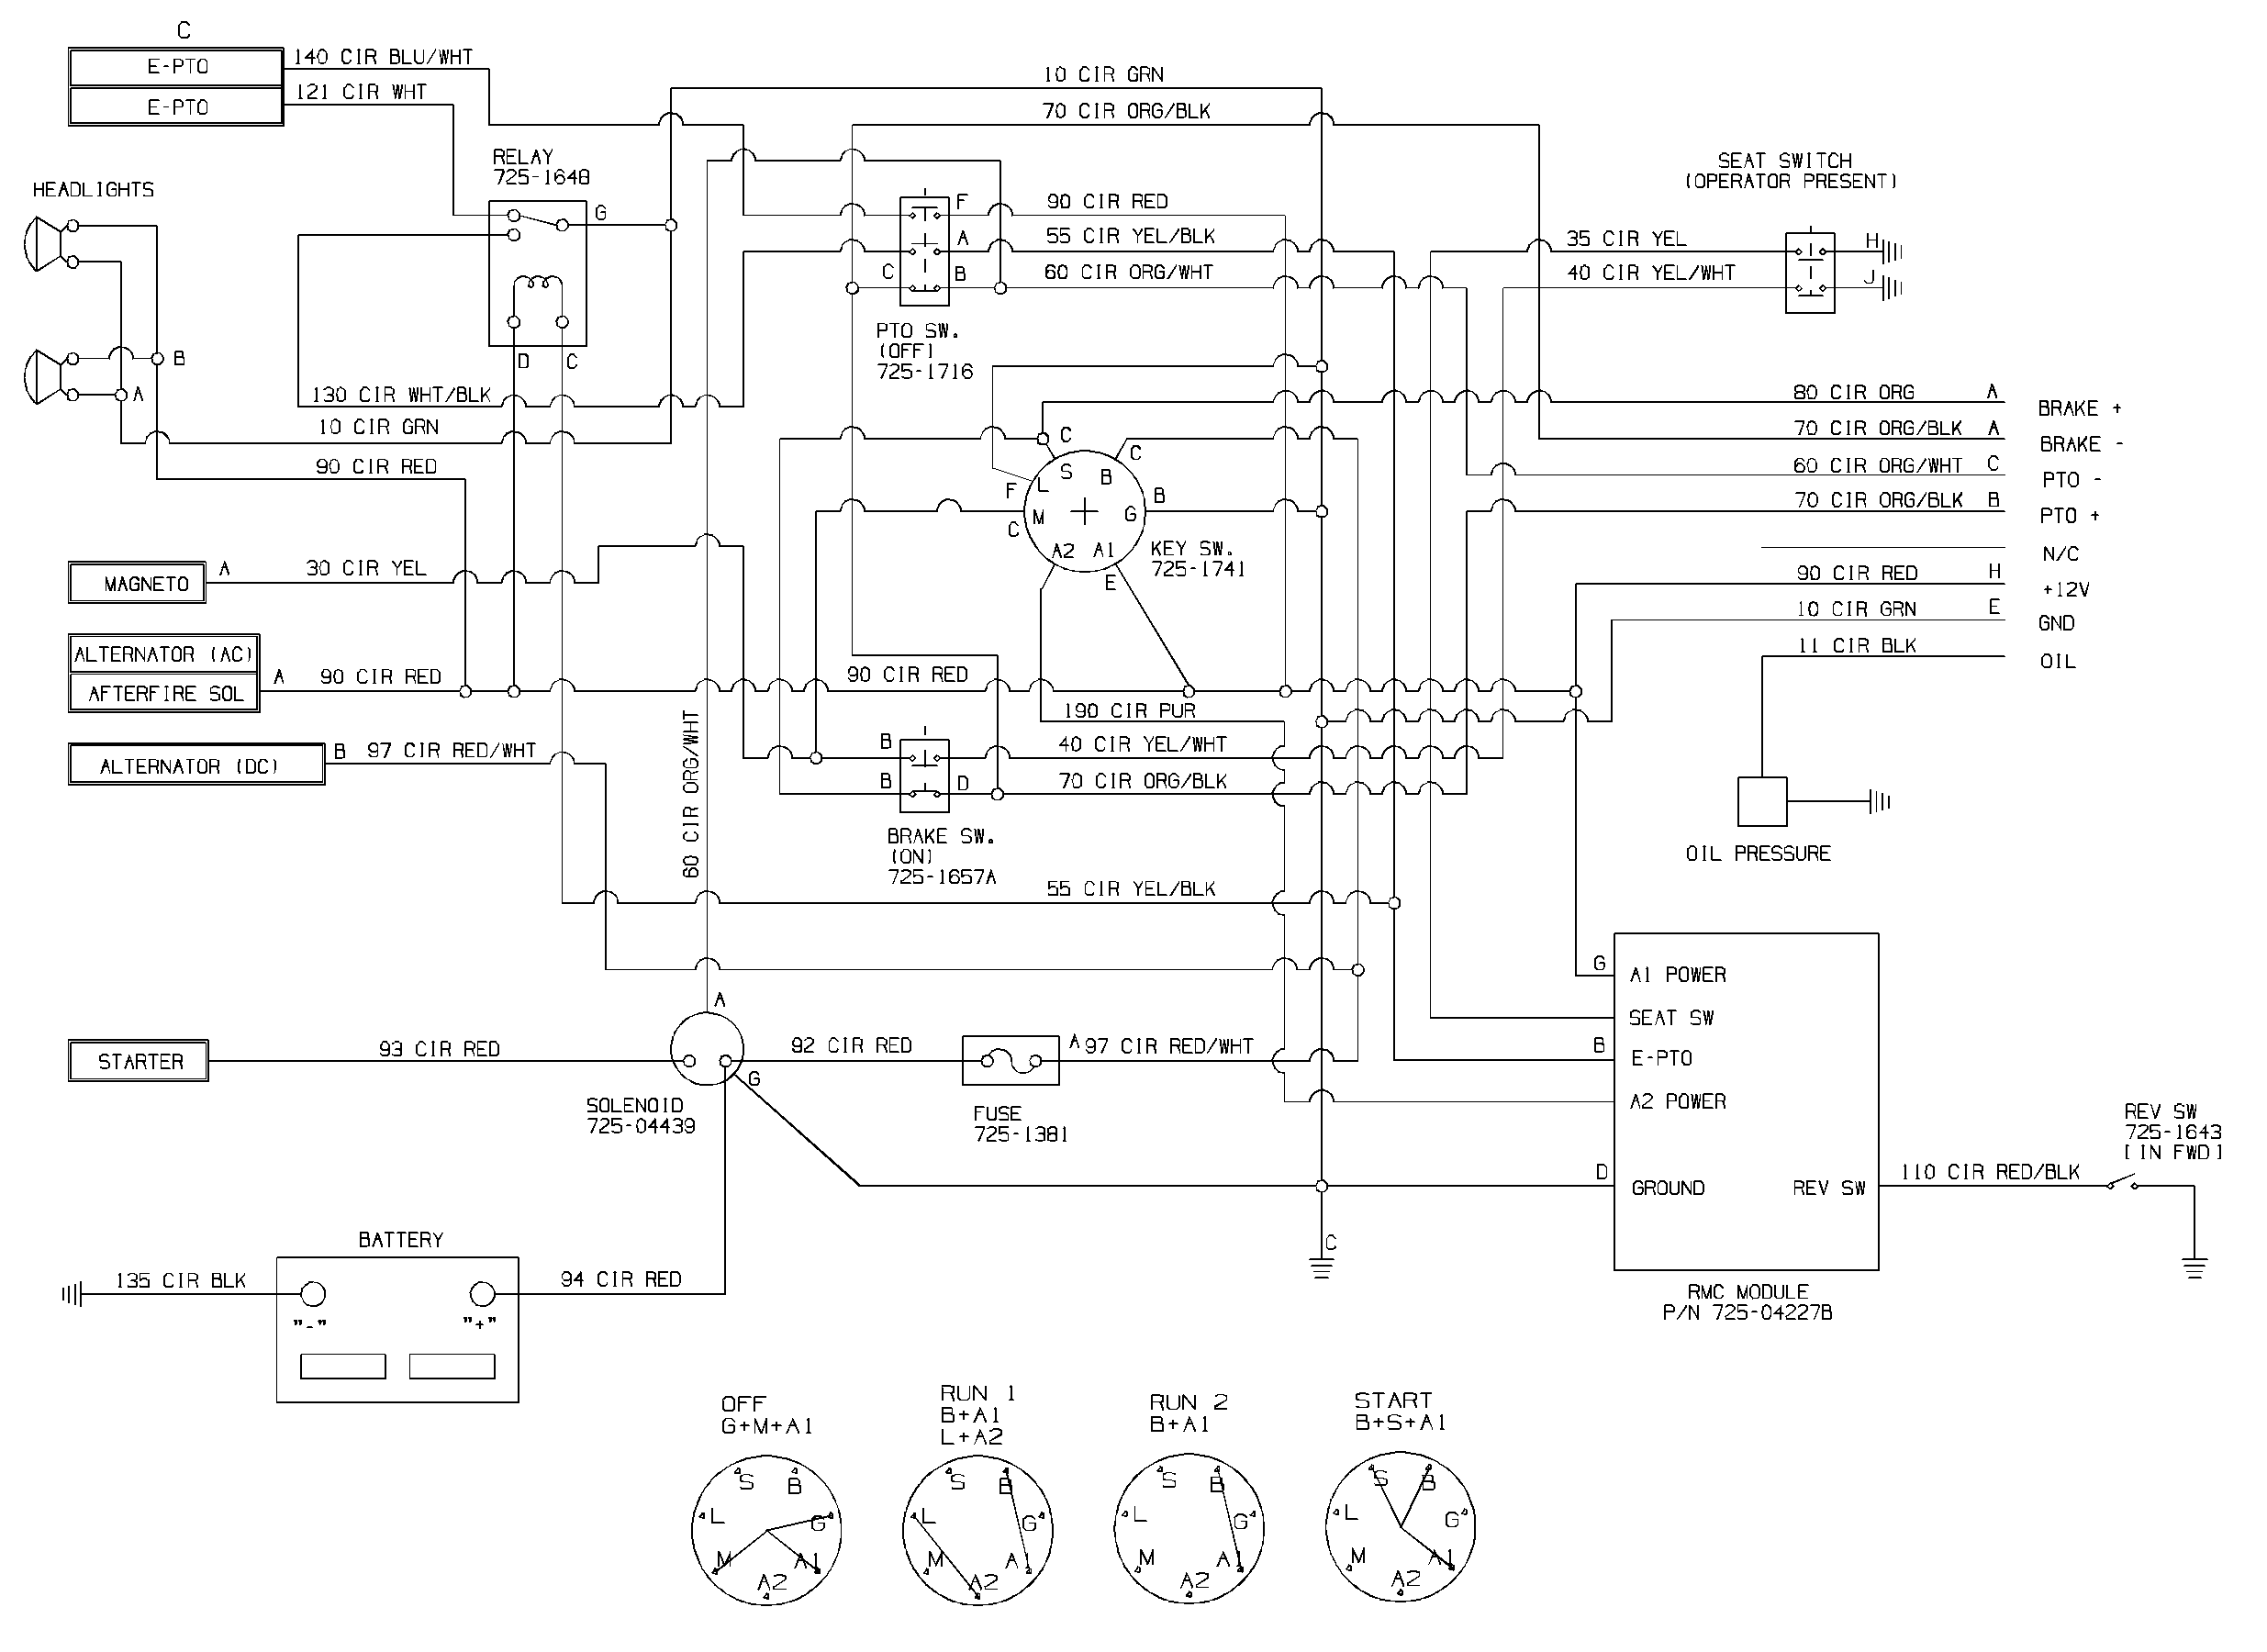 [SCHEMATICS_4UK]  Cub Cadet Schematic Diagram - 95 Silverado Horn Wiring Diagram for Wiring  Diagram Schematics | Cub Cadet Ltx 1045 Wiring Diagram |  | Wiring Diagram Schematics